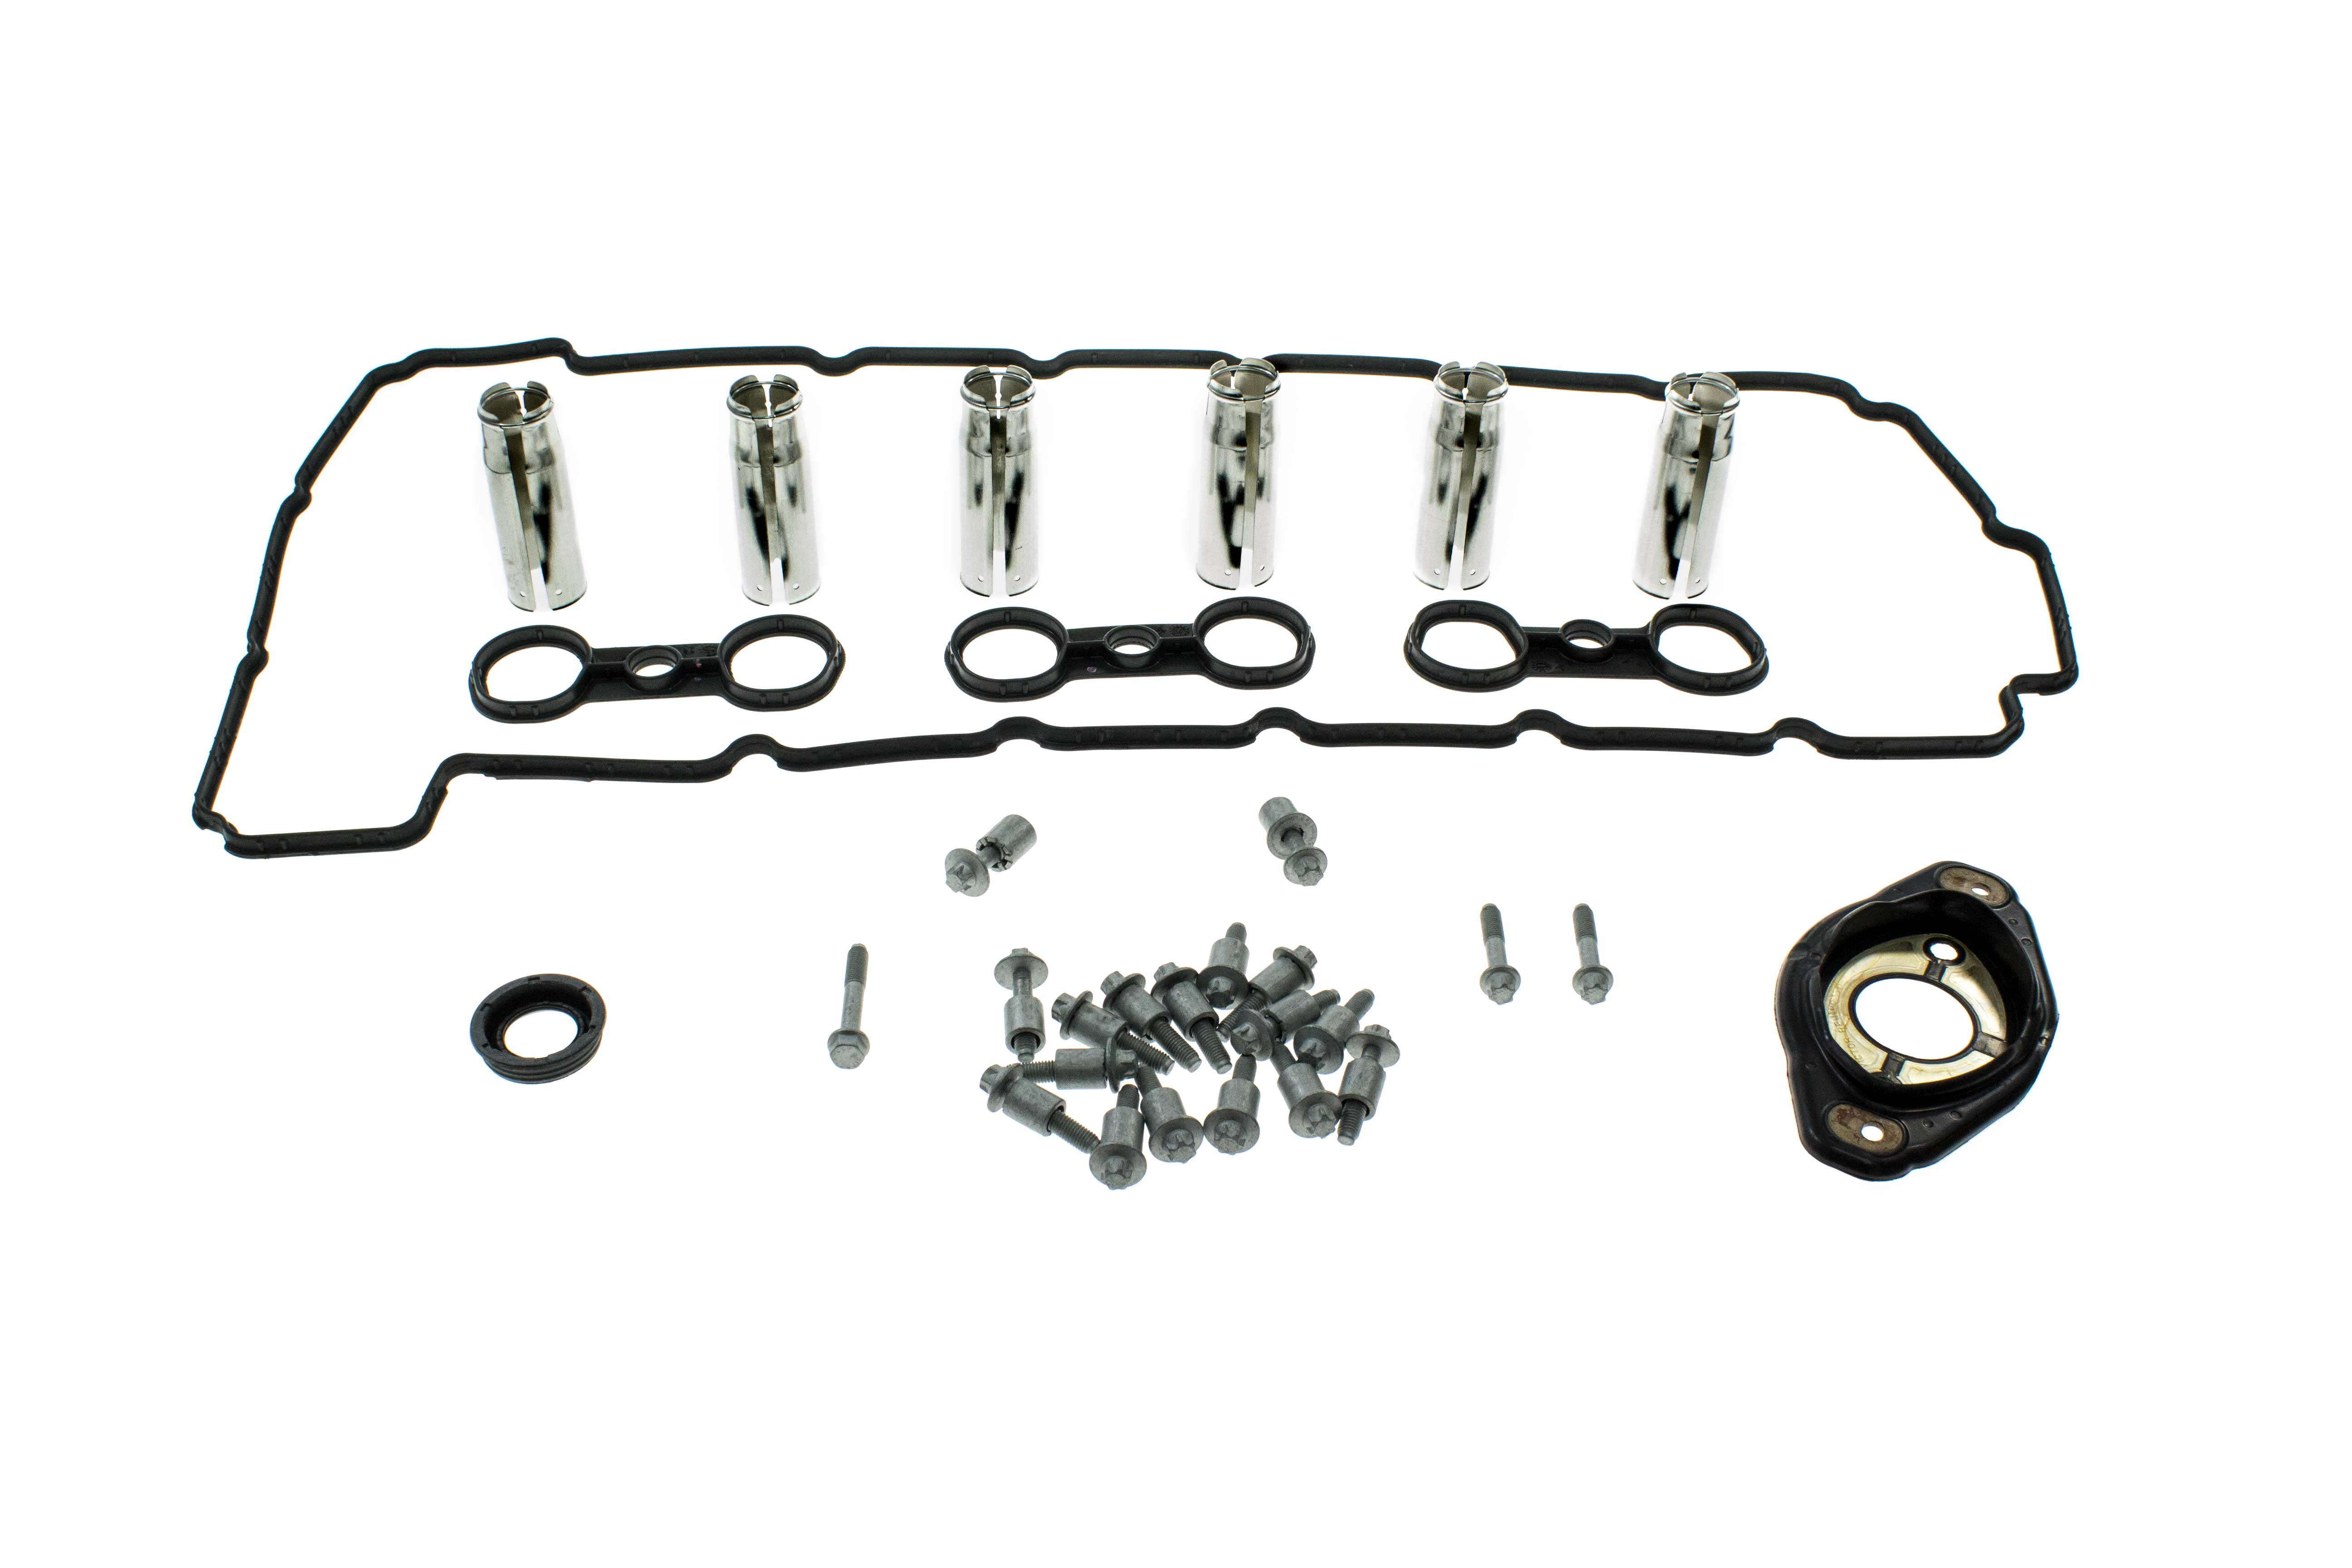 N512VCGSKT2KIT AAZ Preferred Valve Cover Gasket Set; Valve Cover Set, Solenoid Seals, Plug Tube Seals and Bolts; Kit